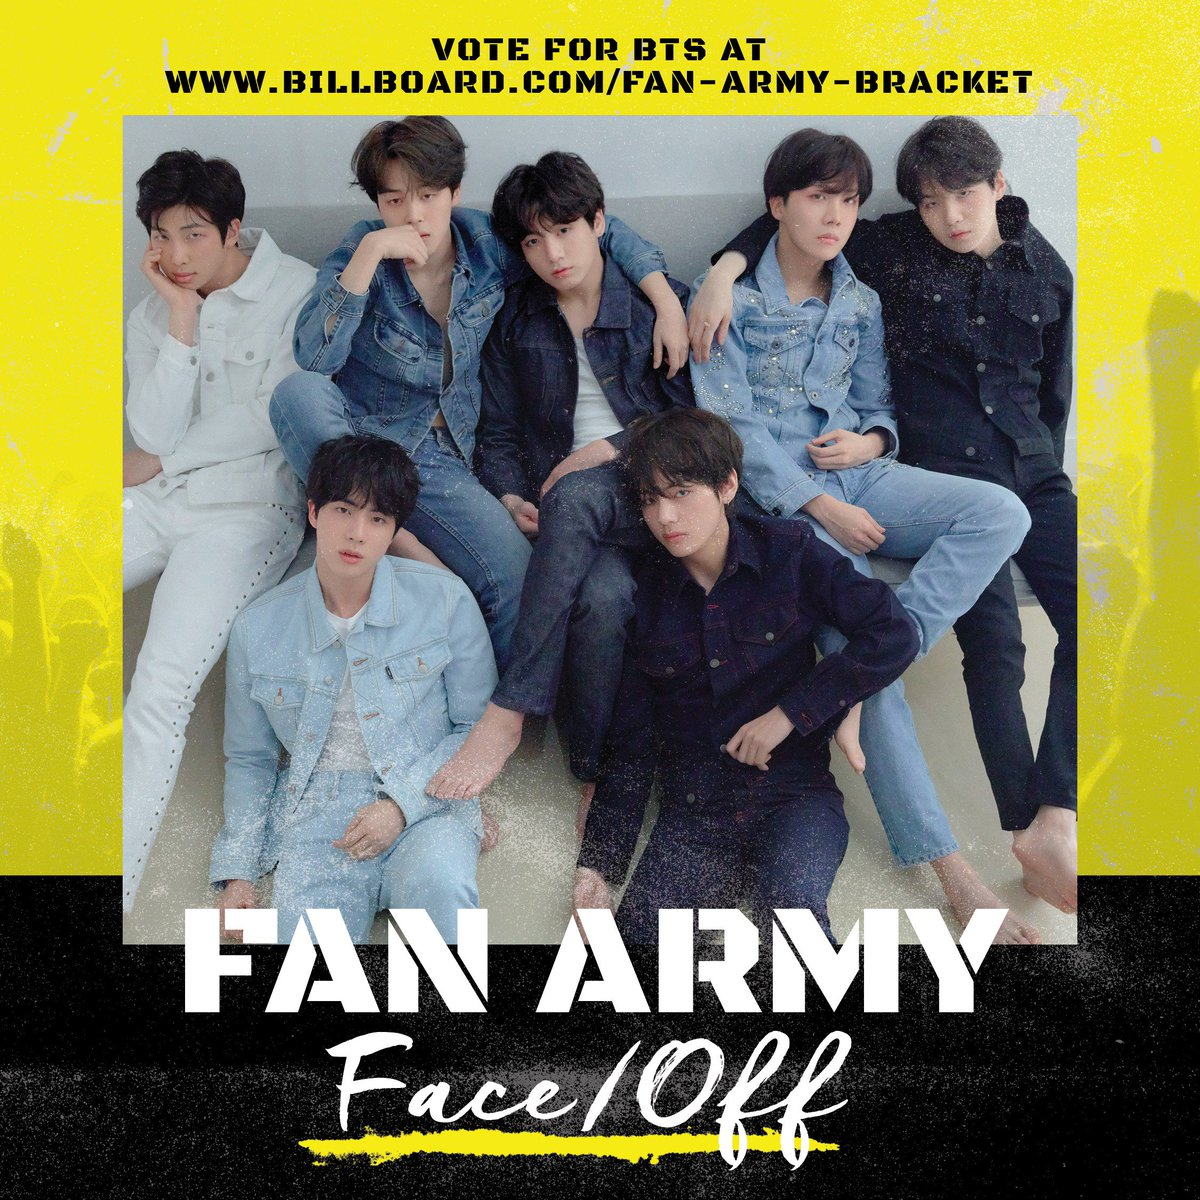 Will it be the #ARMY or Post Malone? Vote in the #FanArmyFaceOff here: https://t.co/FRh46LTgPX